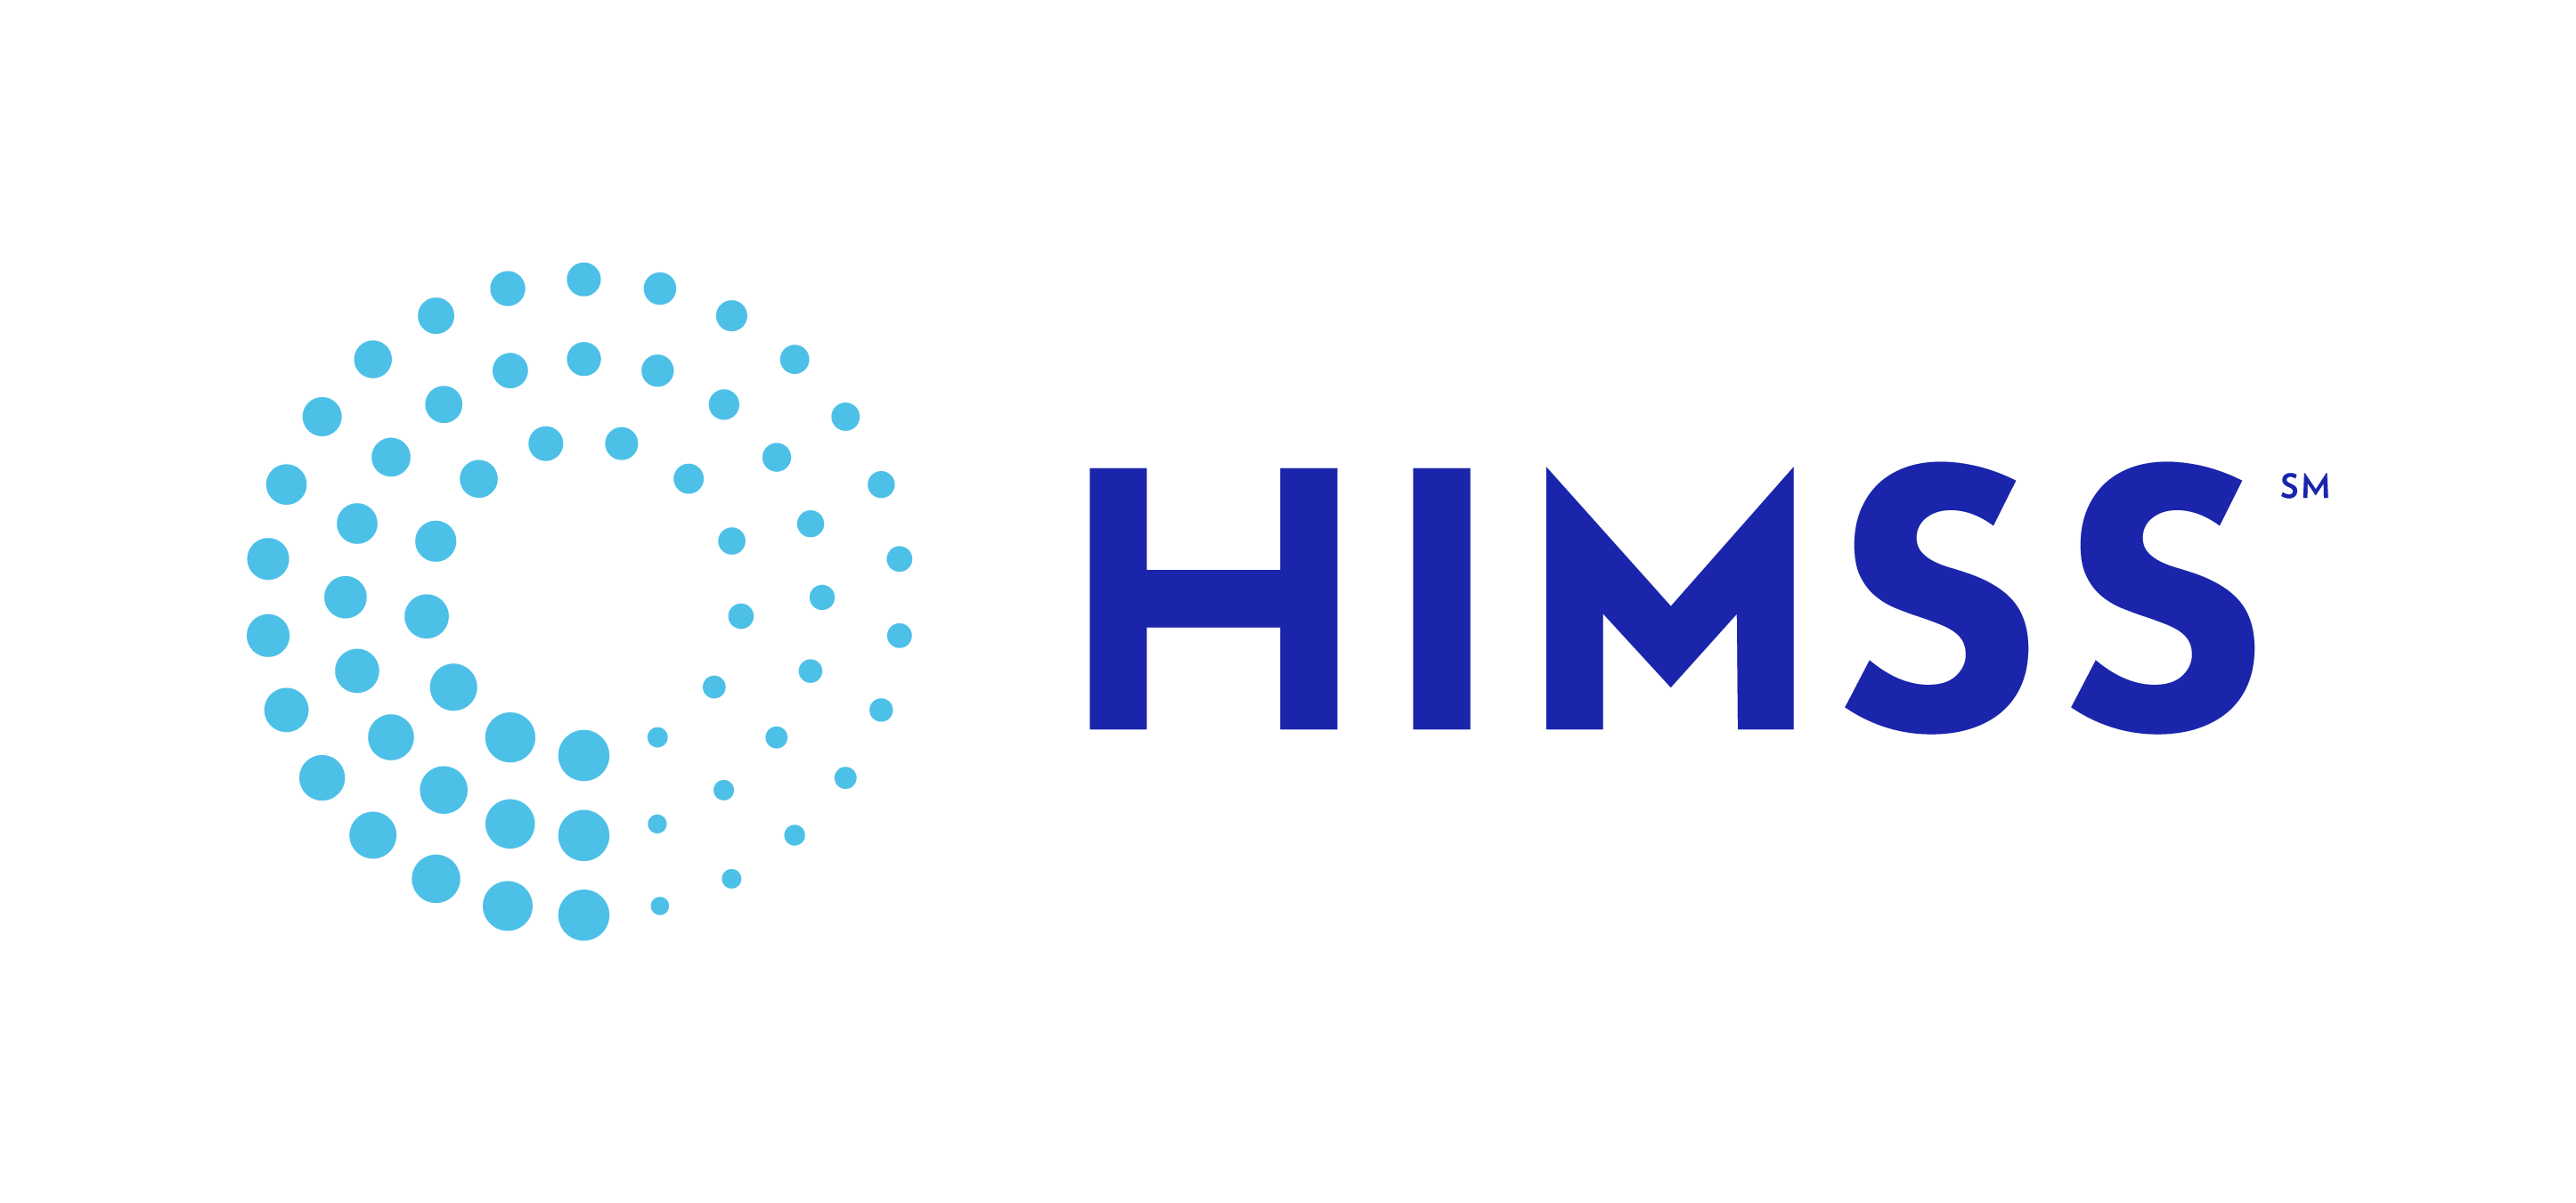 HIMMS